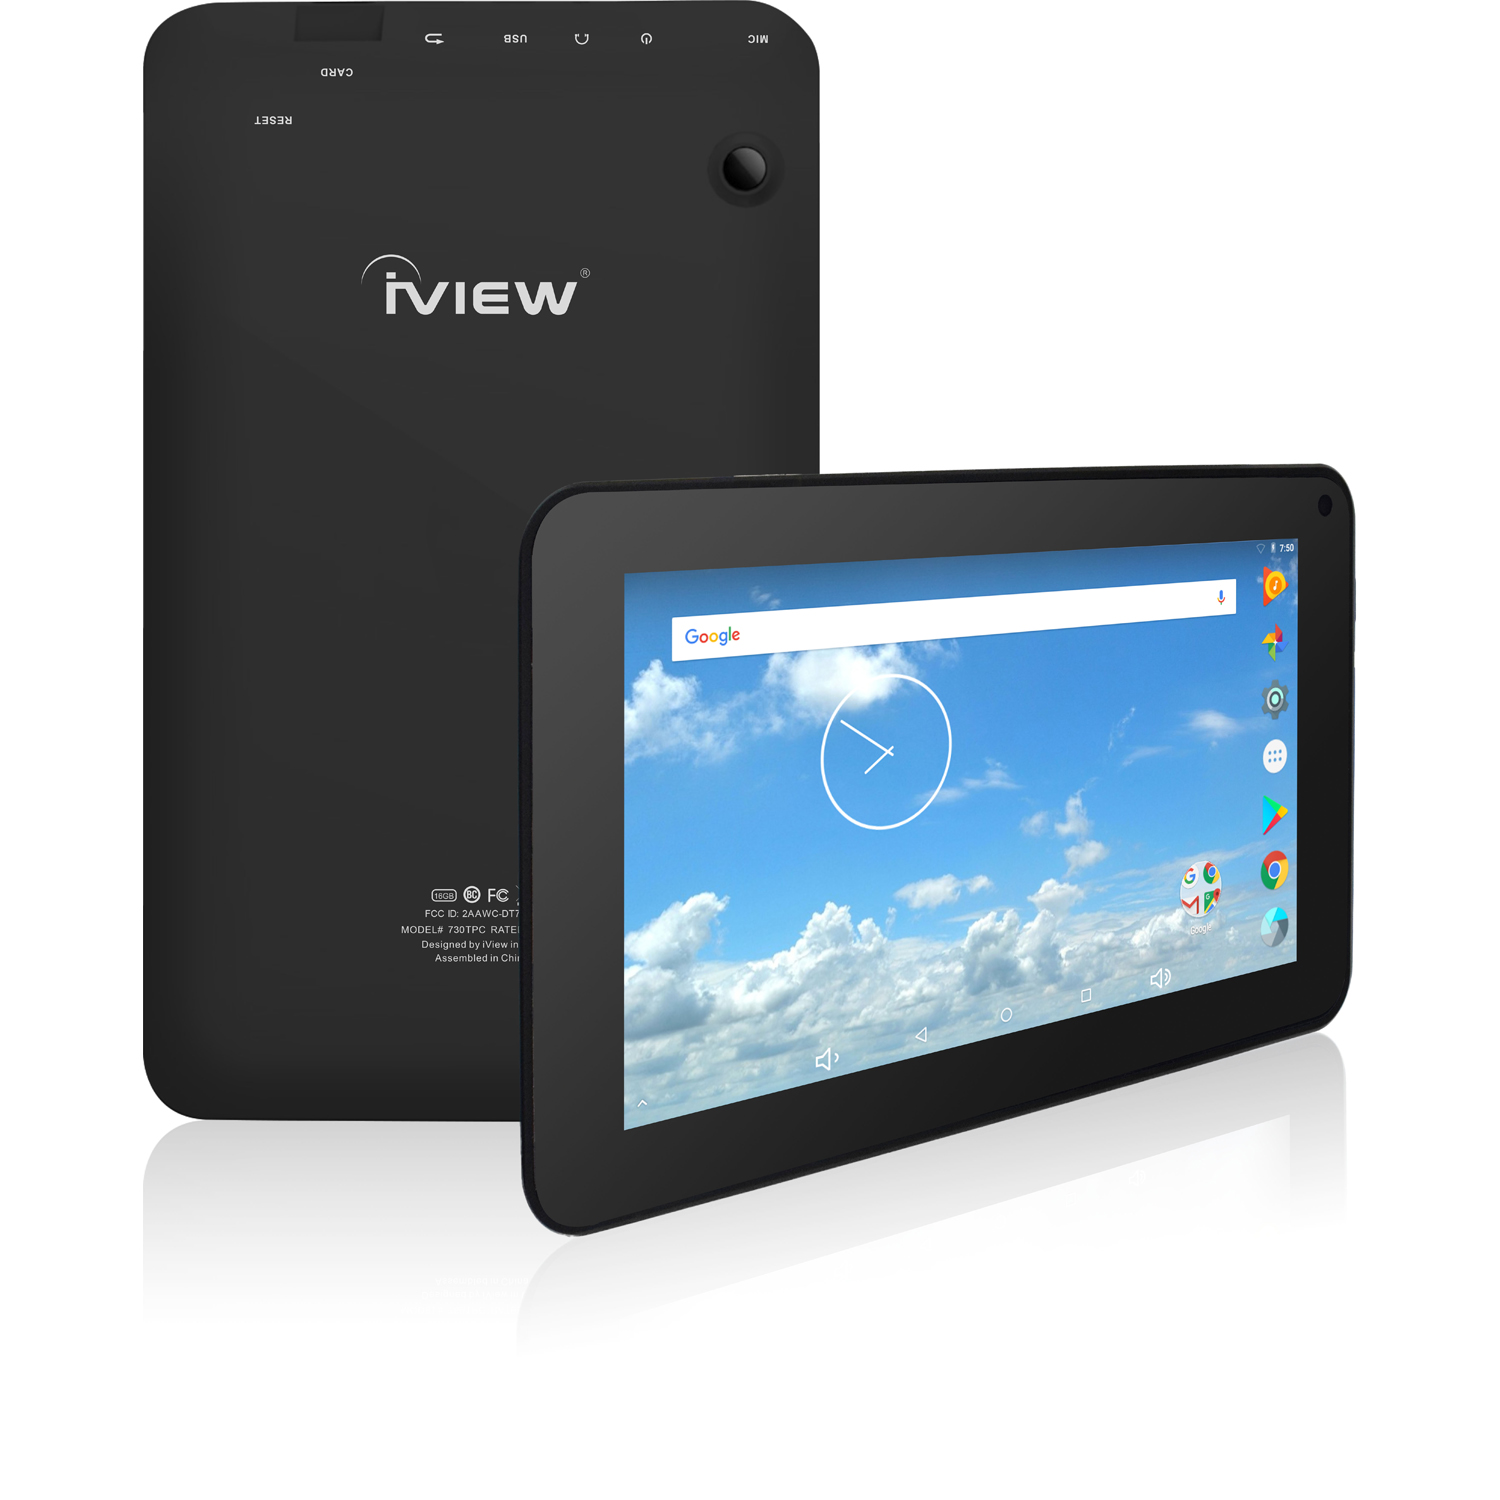 """iView 7"""" Tablet PC, Android 7.1, Quad Core Processor, 1GB Memory, 16GB Storage, Front Facing and Rear Camera, Black"""